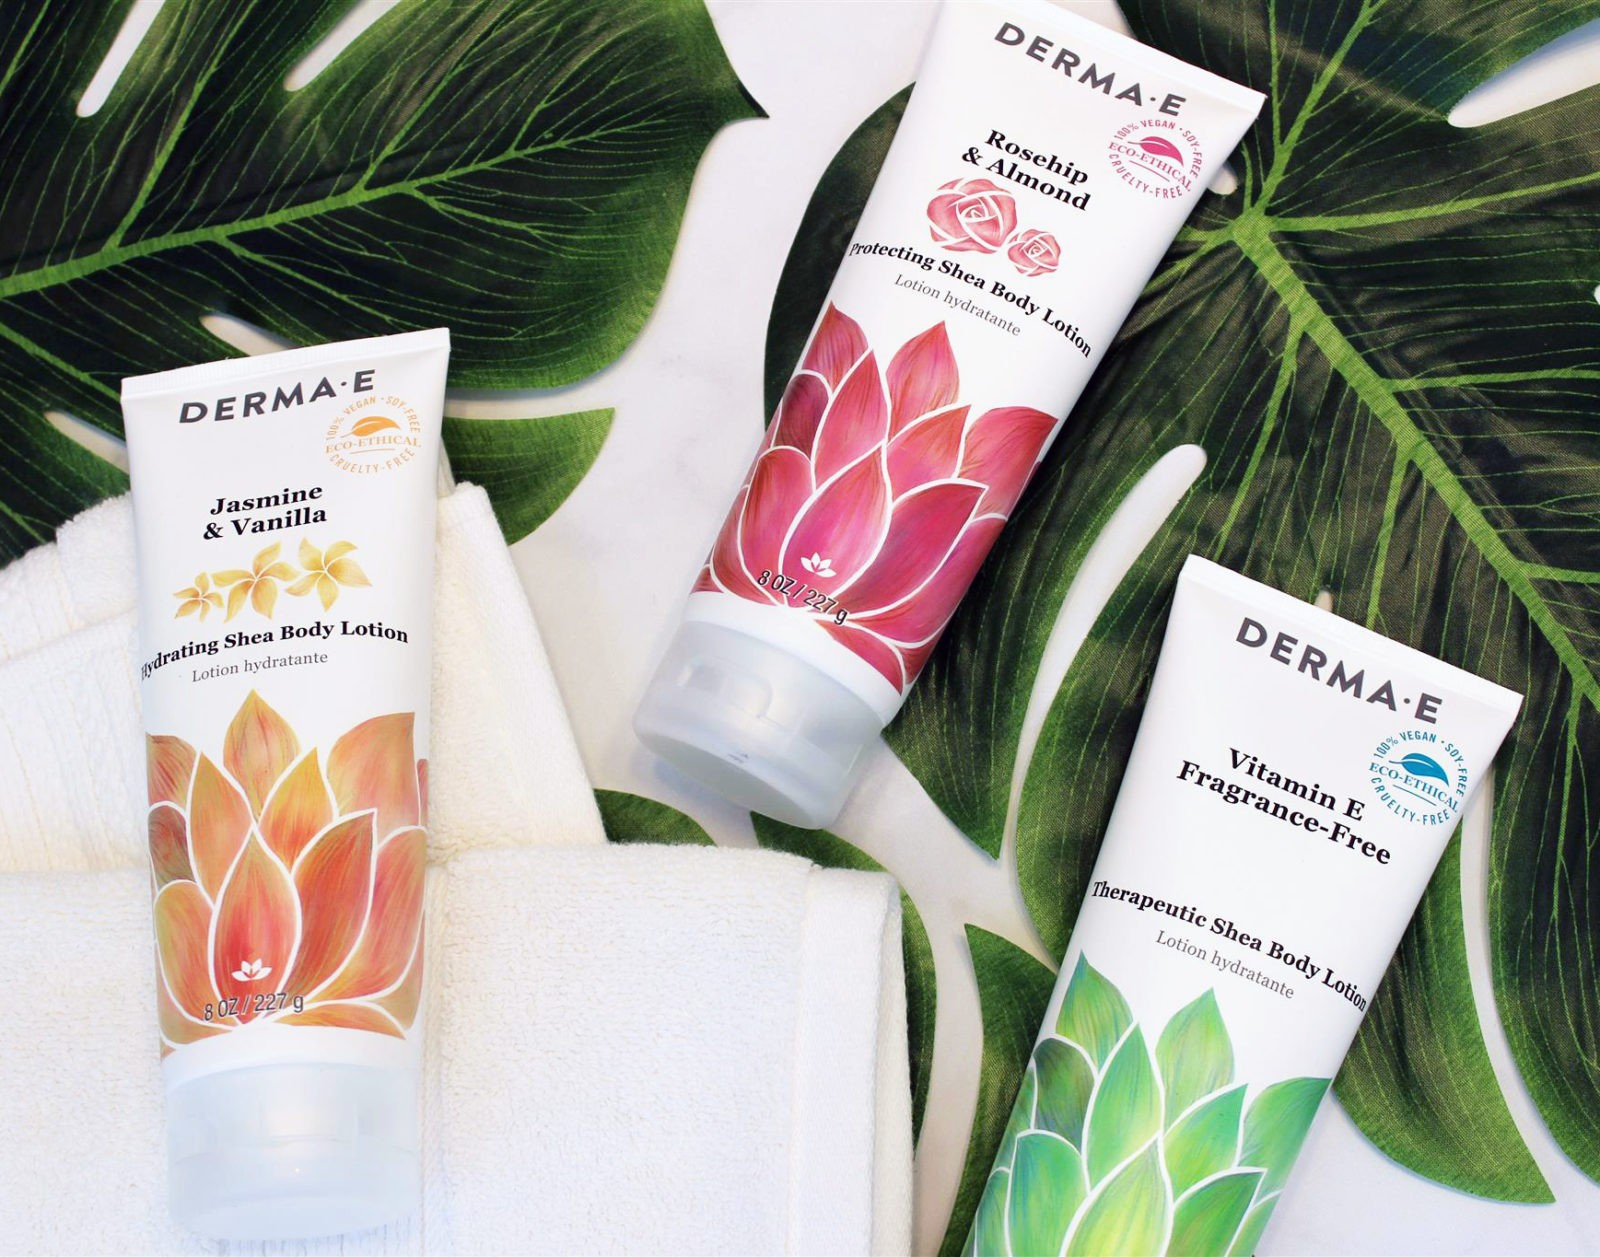 Derma E - Cruelty Free and Vegan Body Lotion Review - Derma E Vegan and Cruelty Free Vegan Body Lotion Review by Los Angeles Beauty Blogger My Beauty Bunny